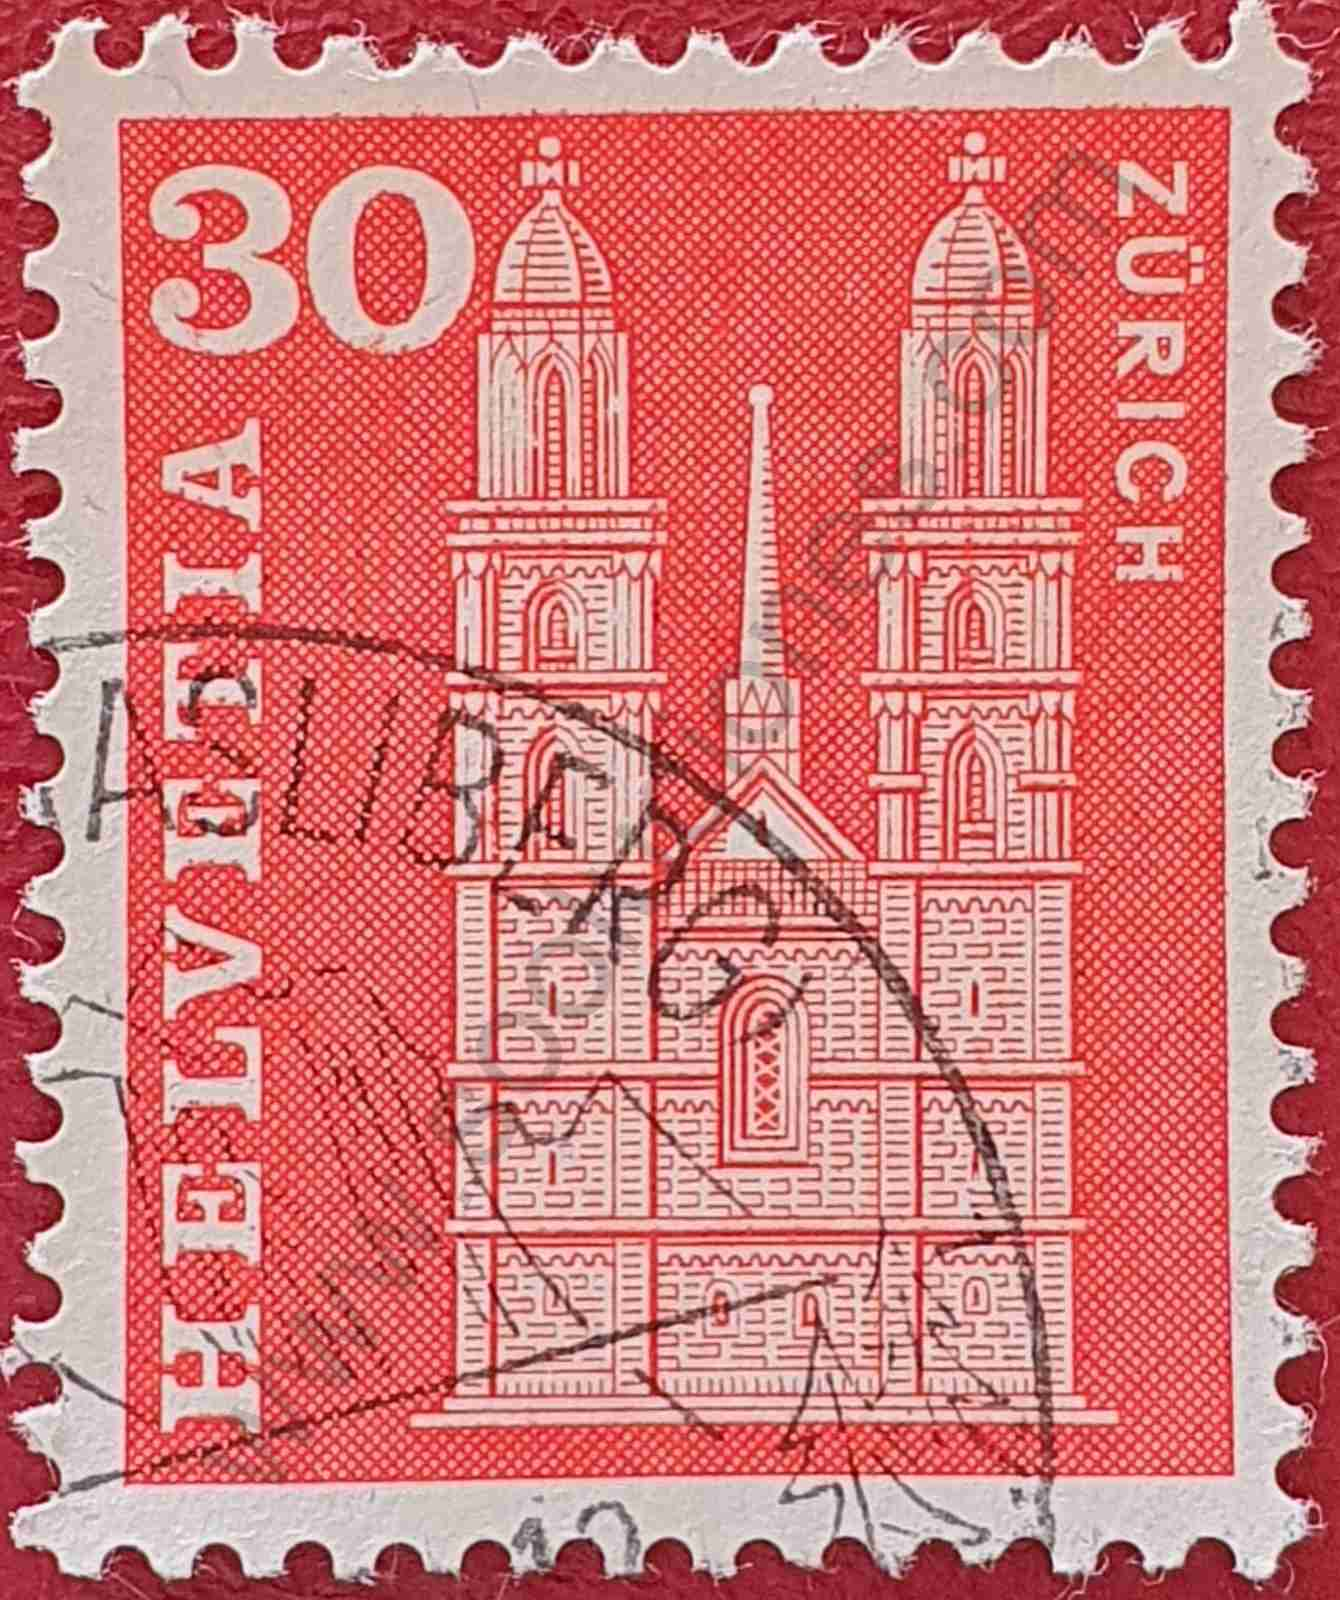 Sello Templo Grossmünster - Suiza 1963